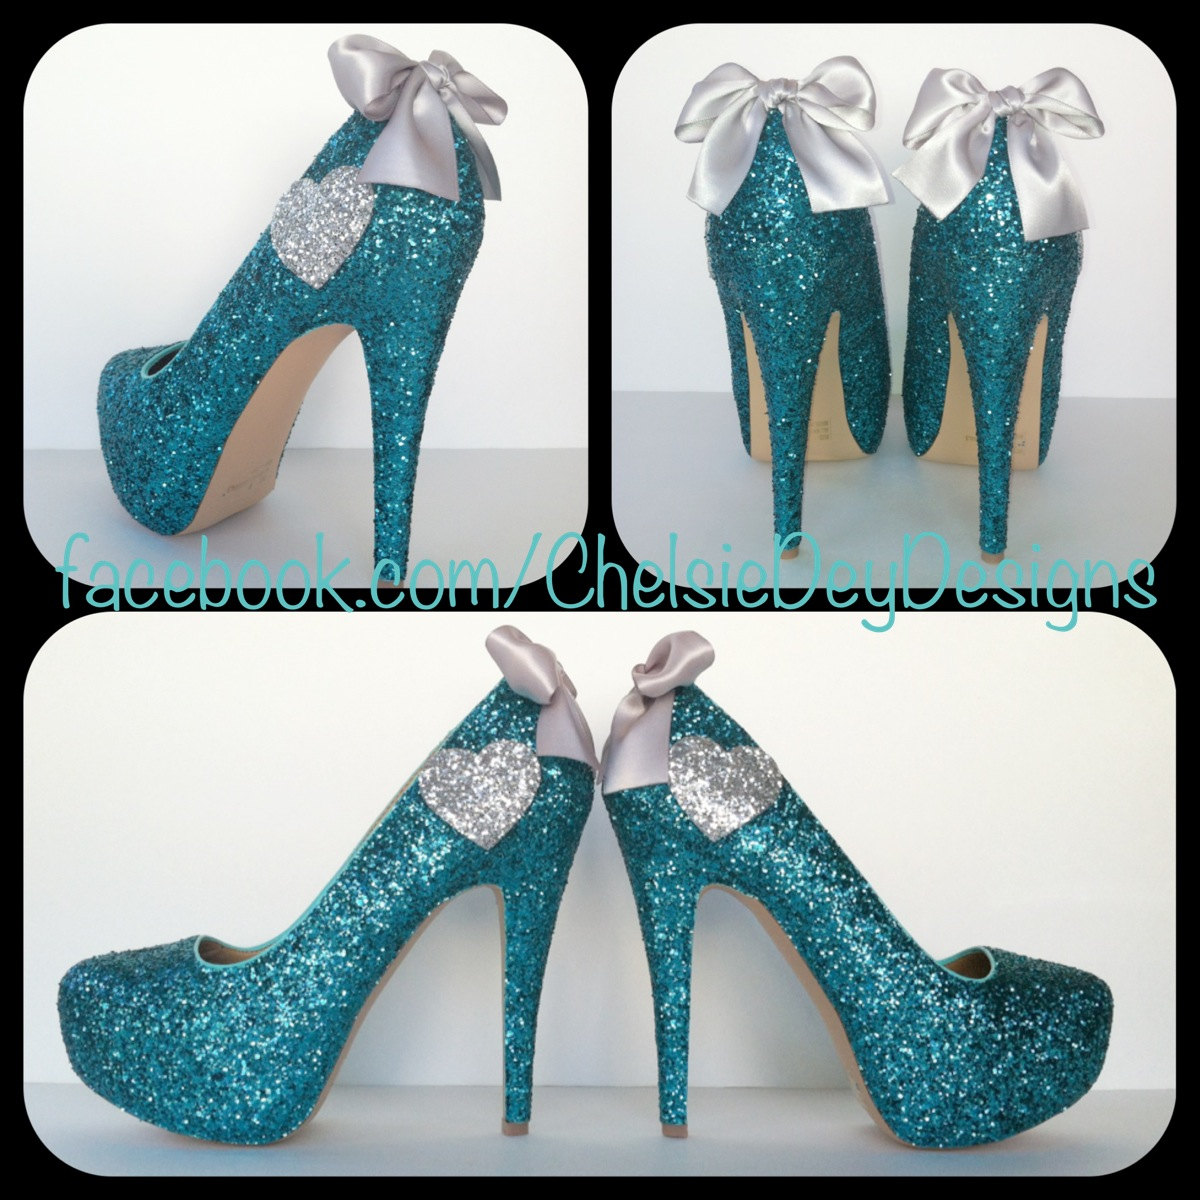 Teal Glitter High Heels - Aqua Turquoise Blue Pumps - Silver Hearts -  Sparkly Wedding Shoes 3980f992a6d3